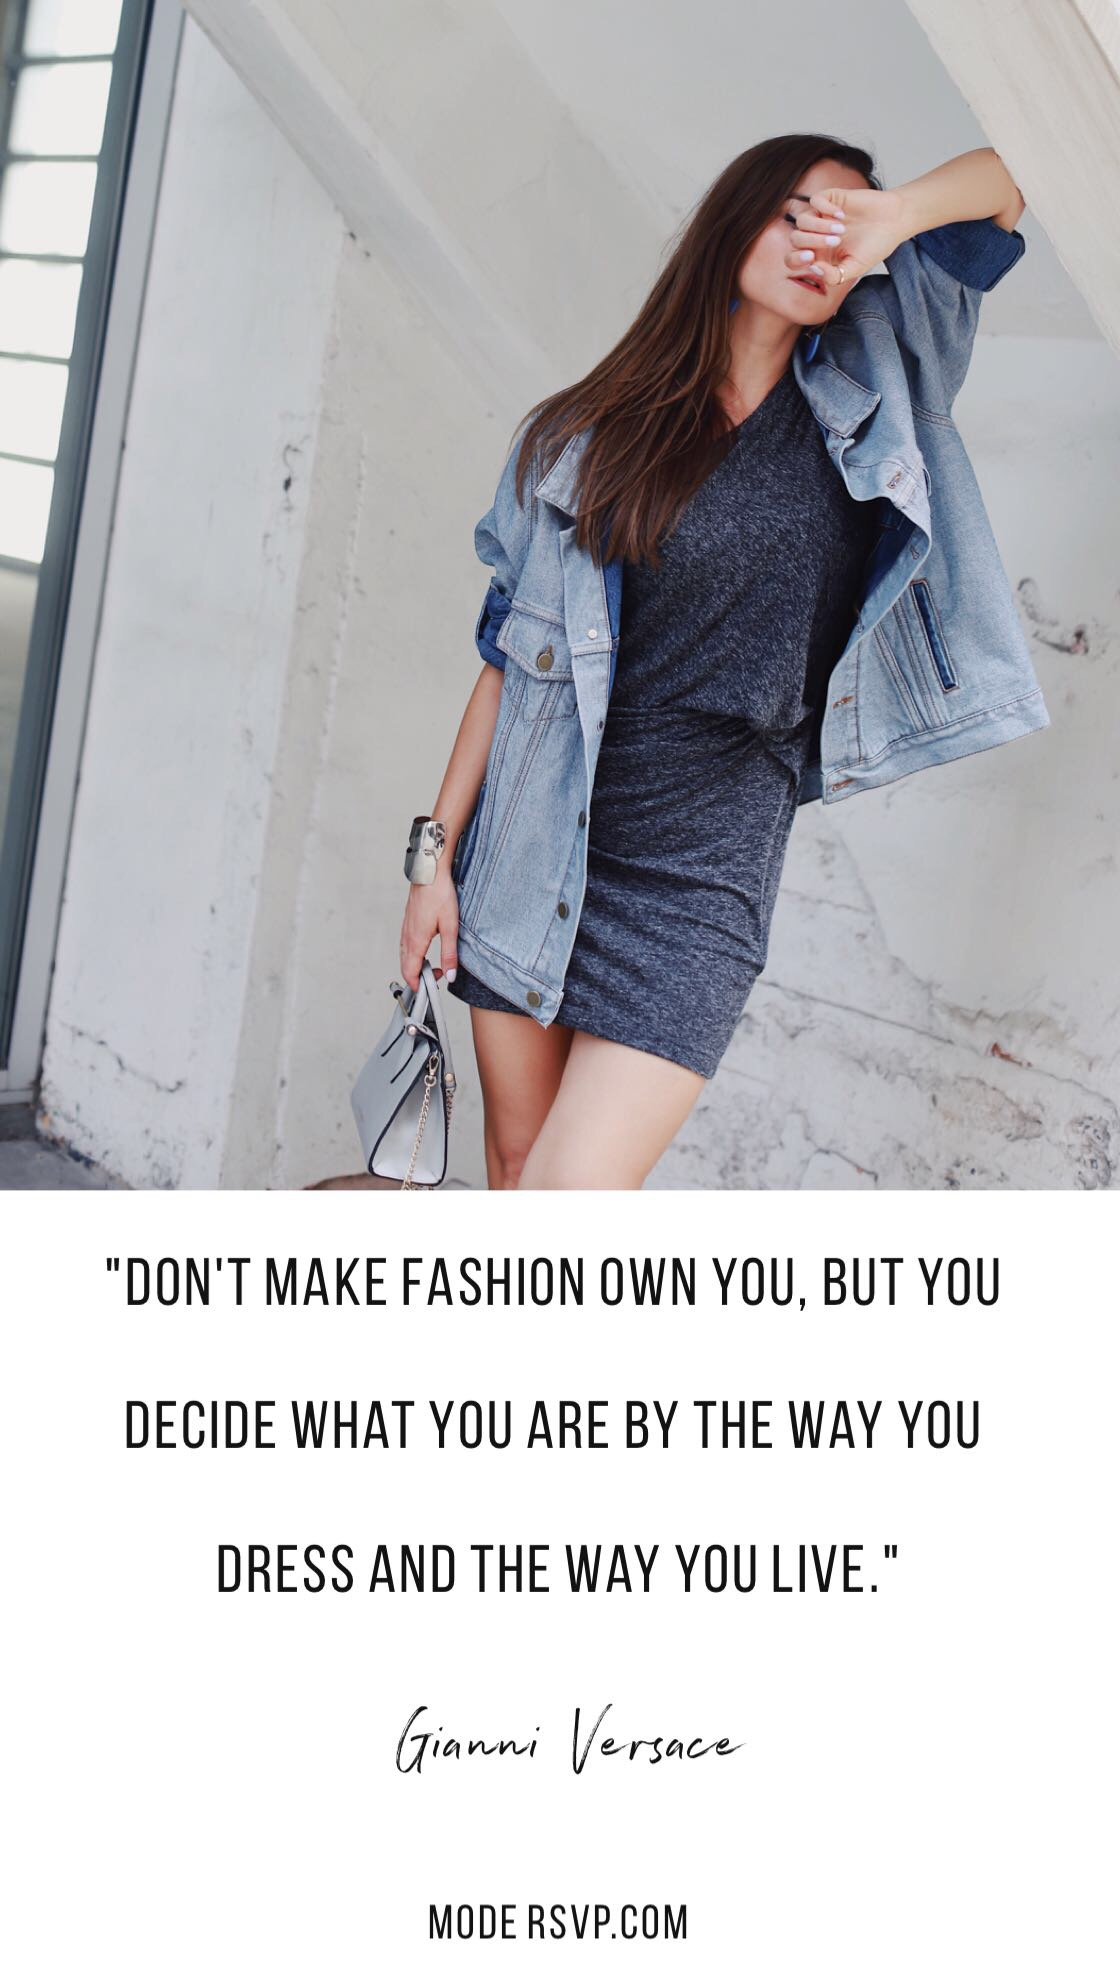 "Best Style Quotes - Fashion Quotes ""Don't make fashion own you, but you decide what you are by the way you dress and the way you live."" Gianni Versace - Read more style quotes from Anna Wintour, Diane Von Furstenberg, Coco Chanel and other fashion designers and style icons on Houseofcomil.com"